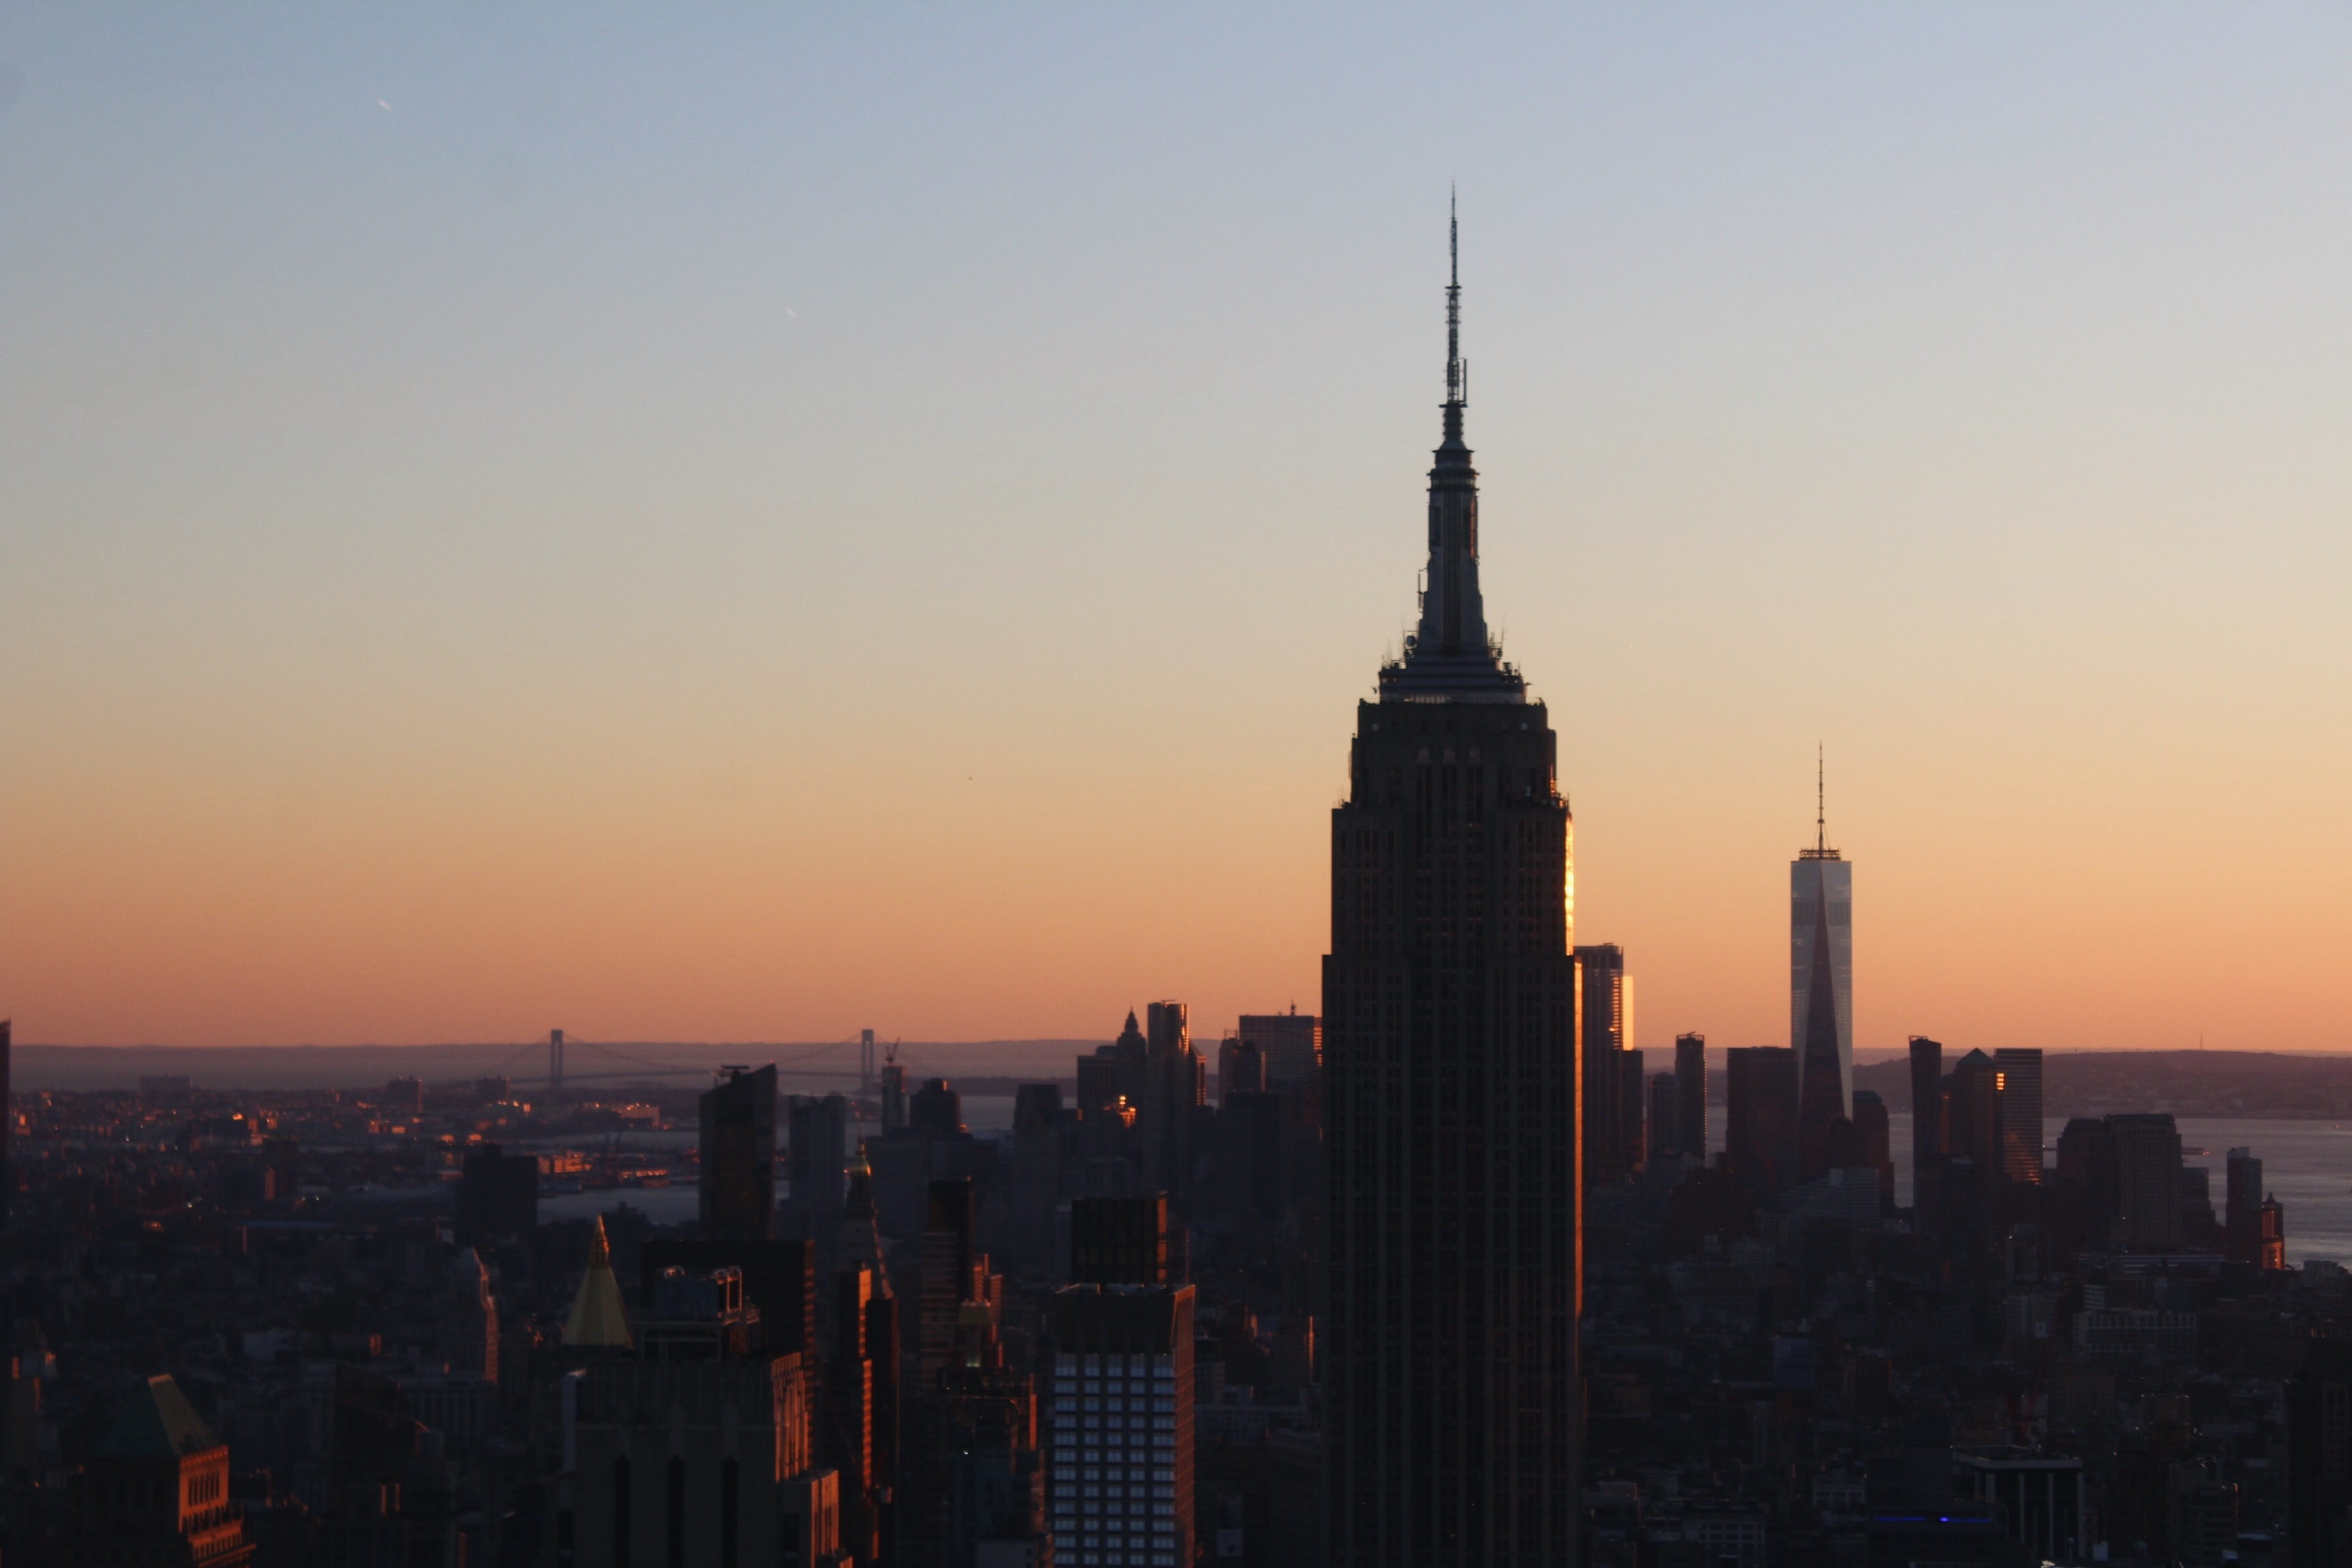 Empire State Building, New York during golden hour